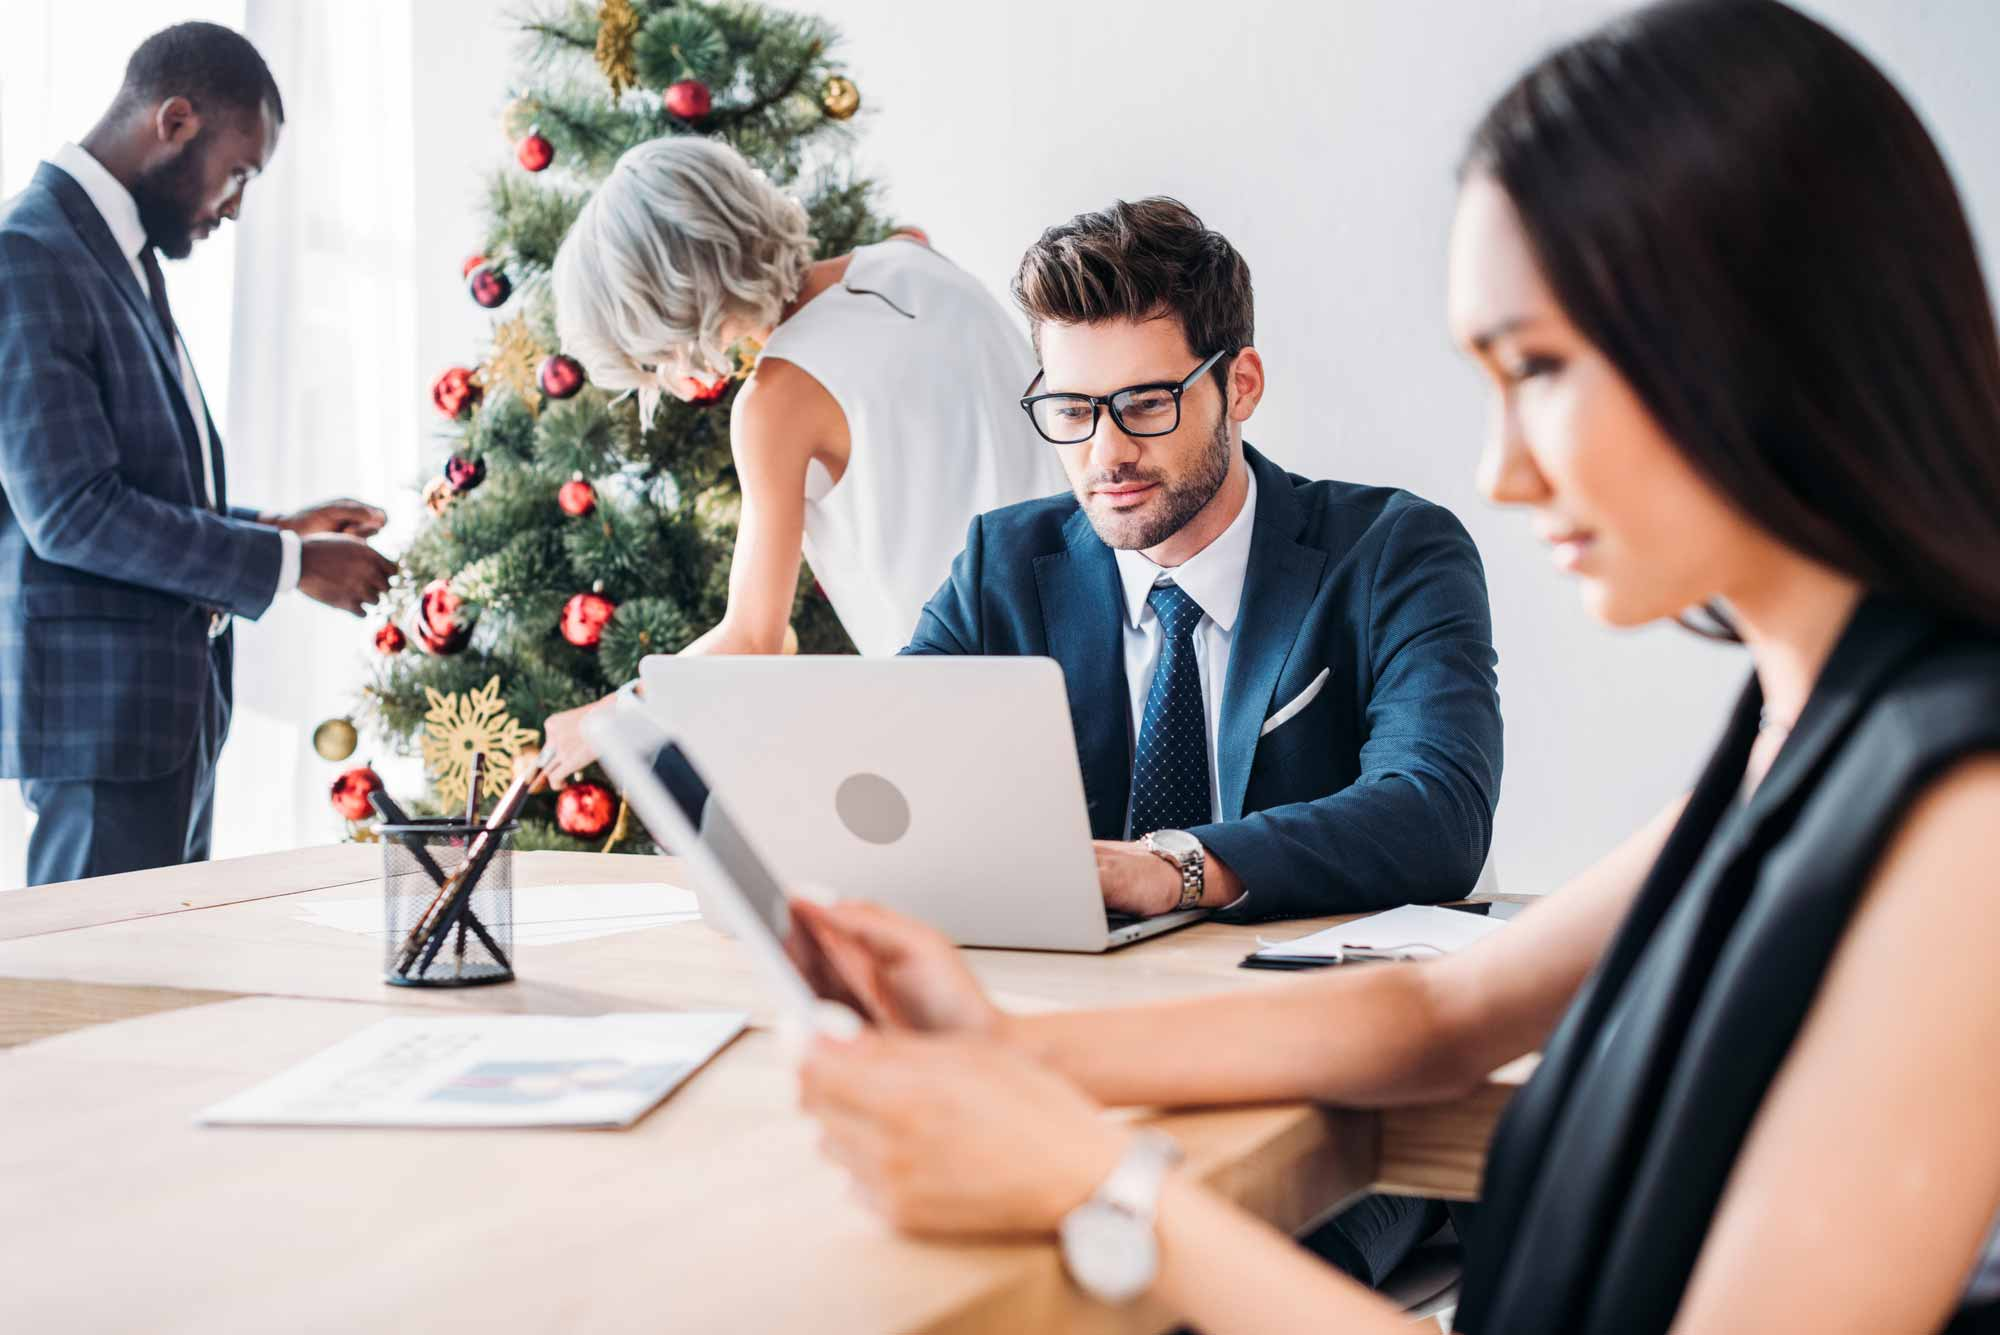 Three common mistakes business owners make at Christmas-img